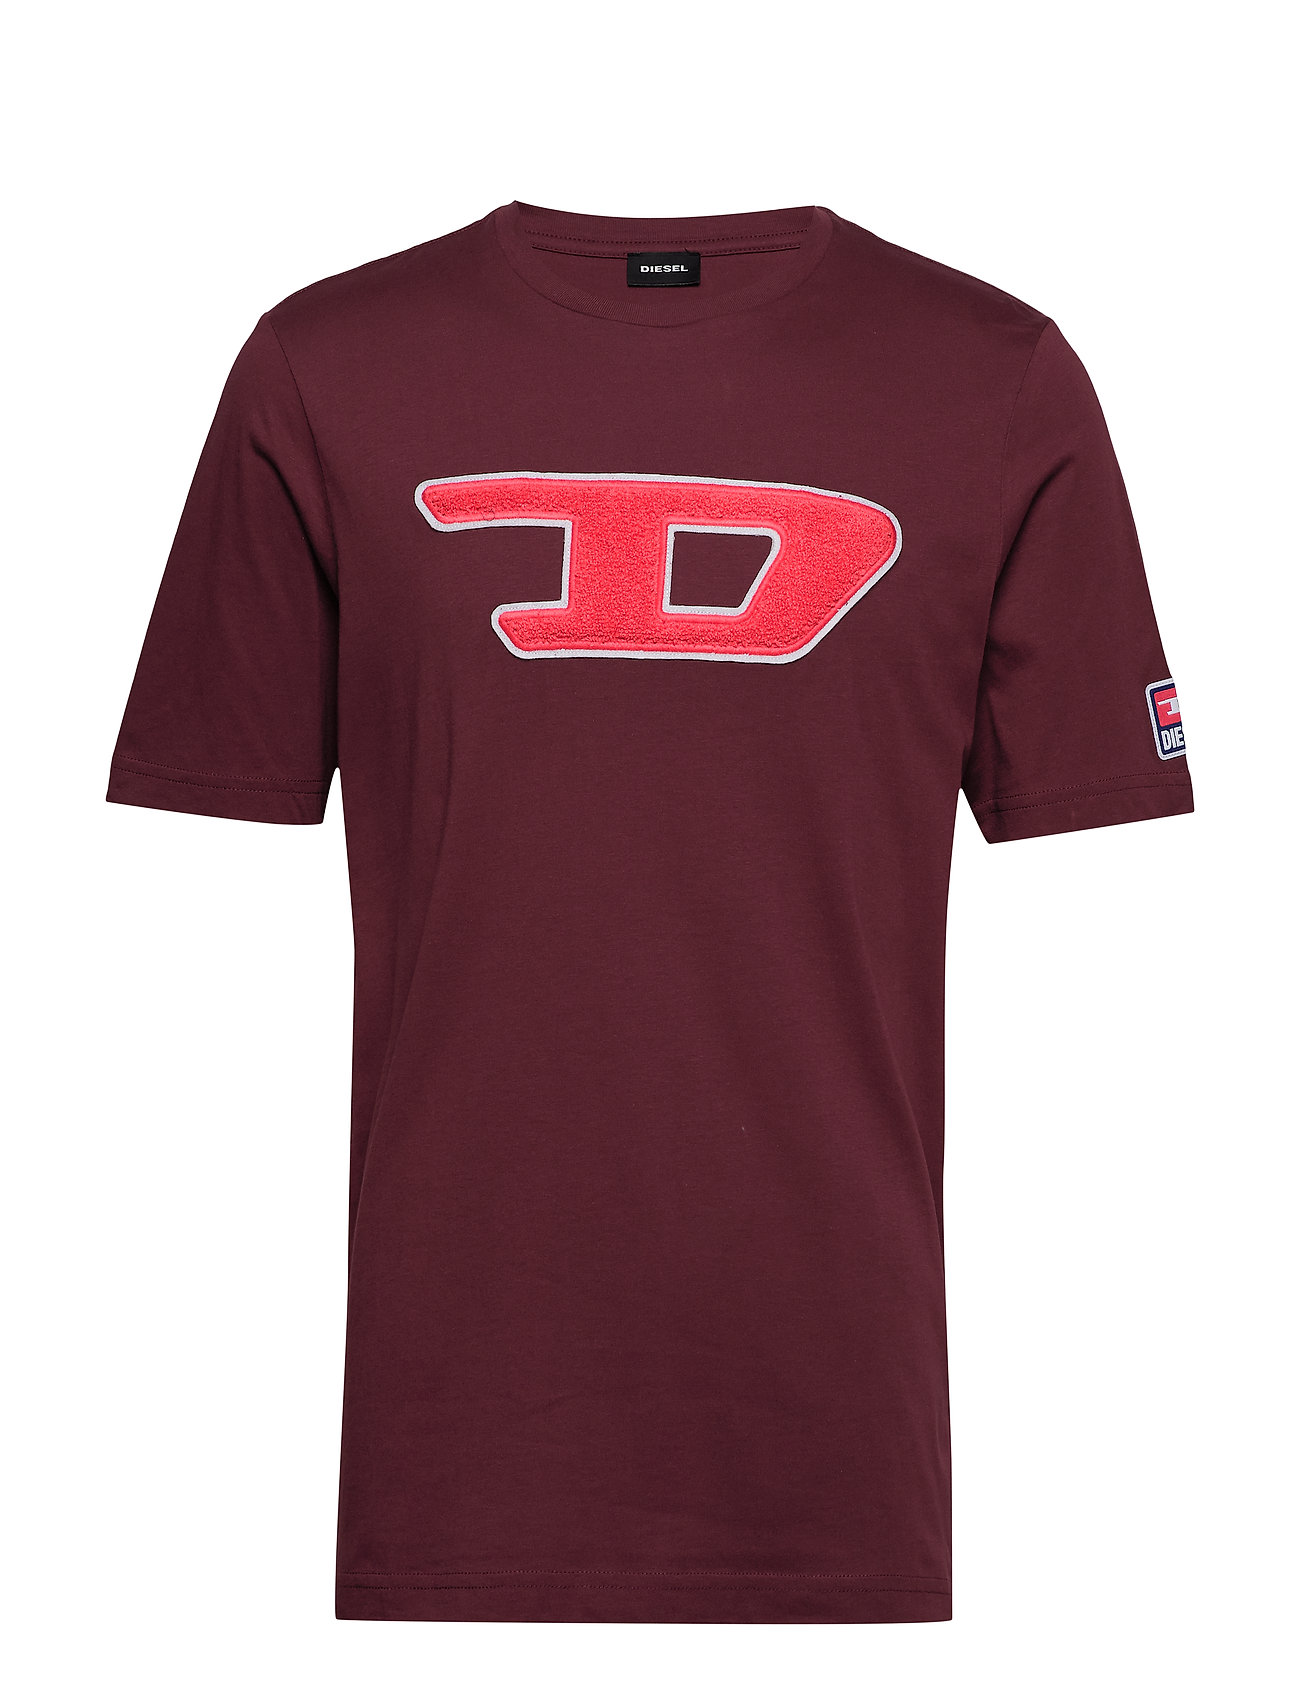 Diesel Men T-JUST-DIVISION-D T-SHIRT - TAWNY RED